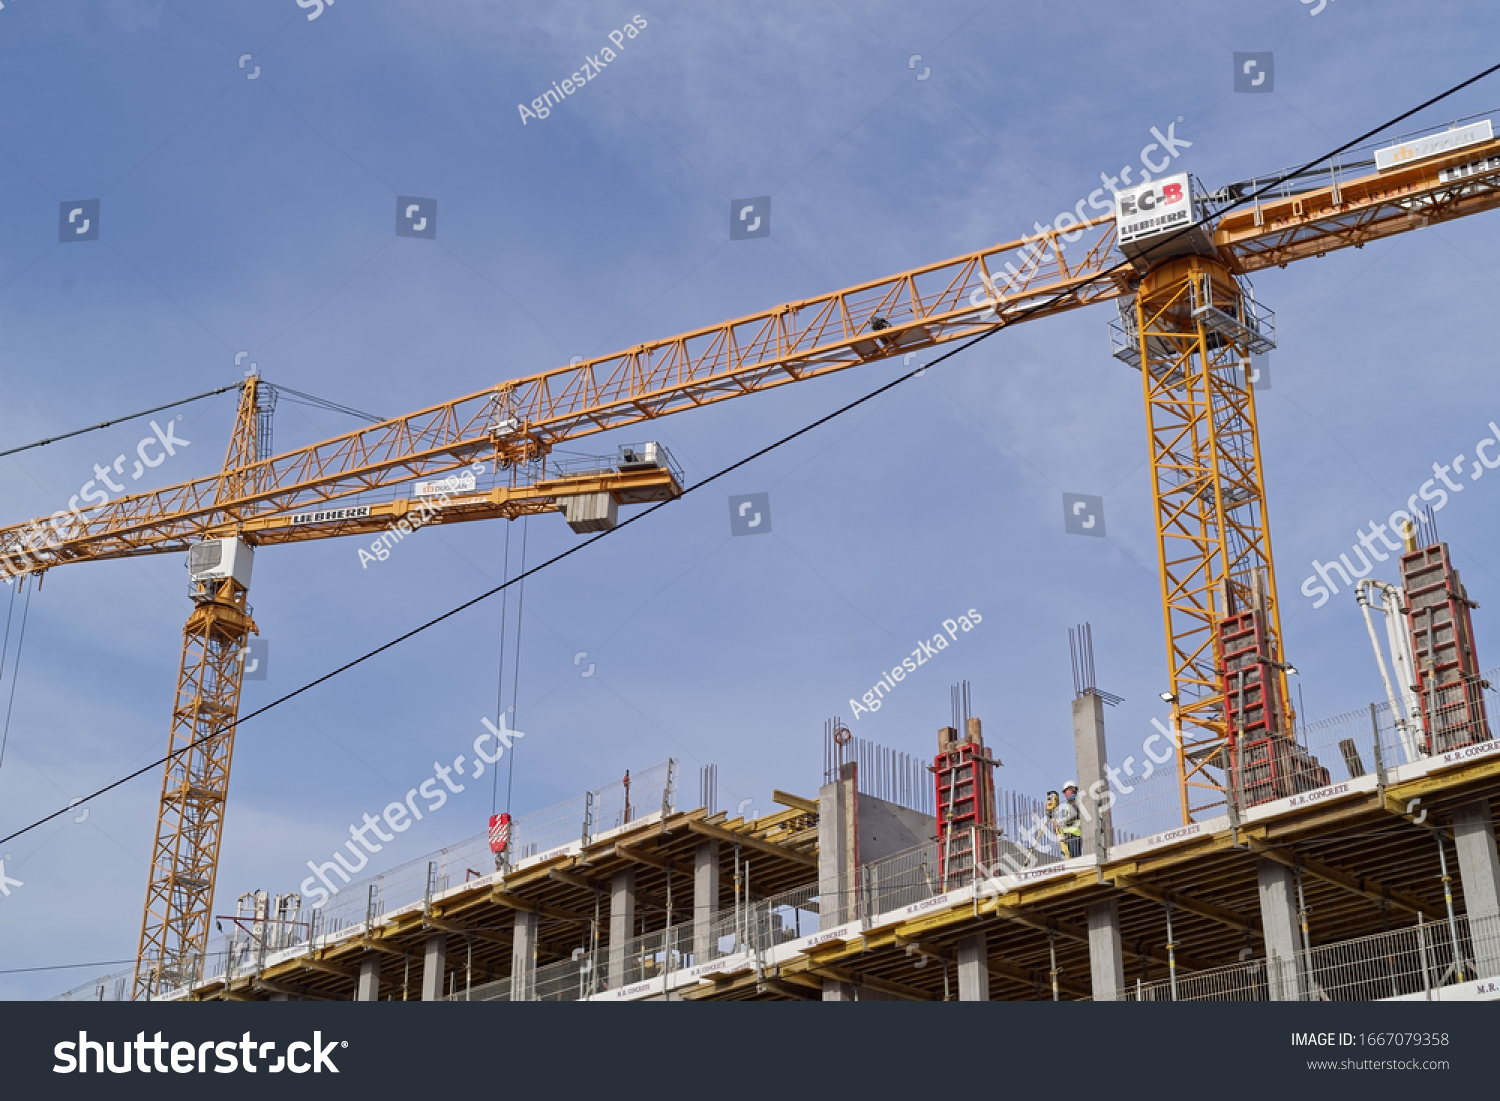 DUBLIN, IRELAND - MARCH 5, 2020: Building construction site with tower cranes against blue sky. View from below.